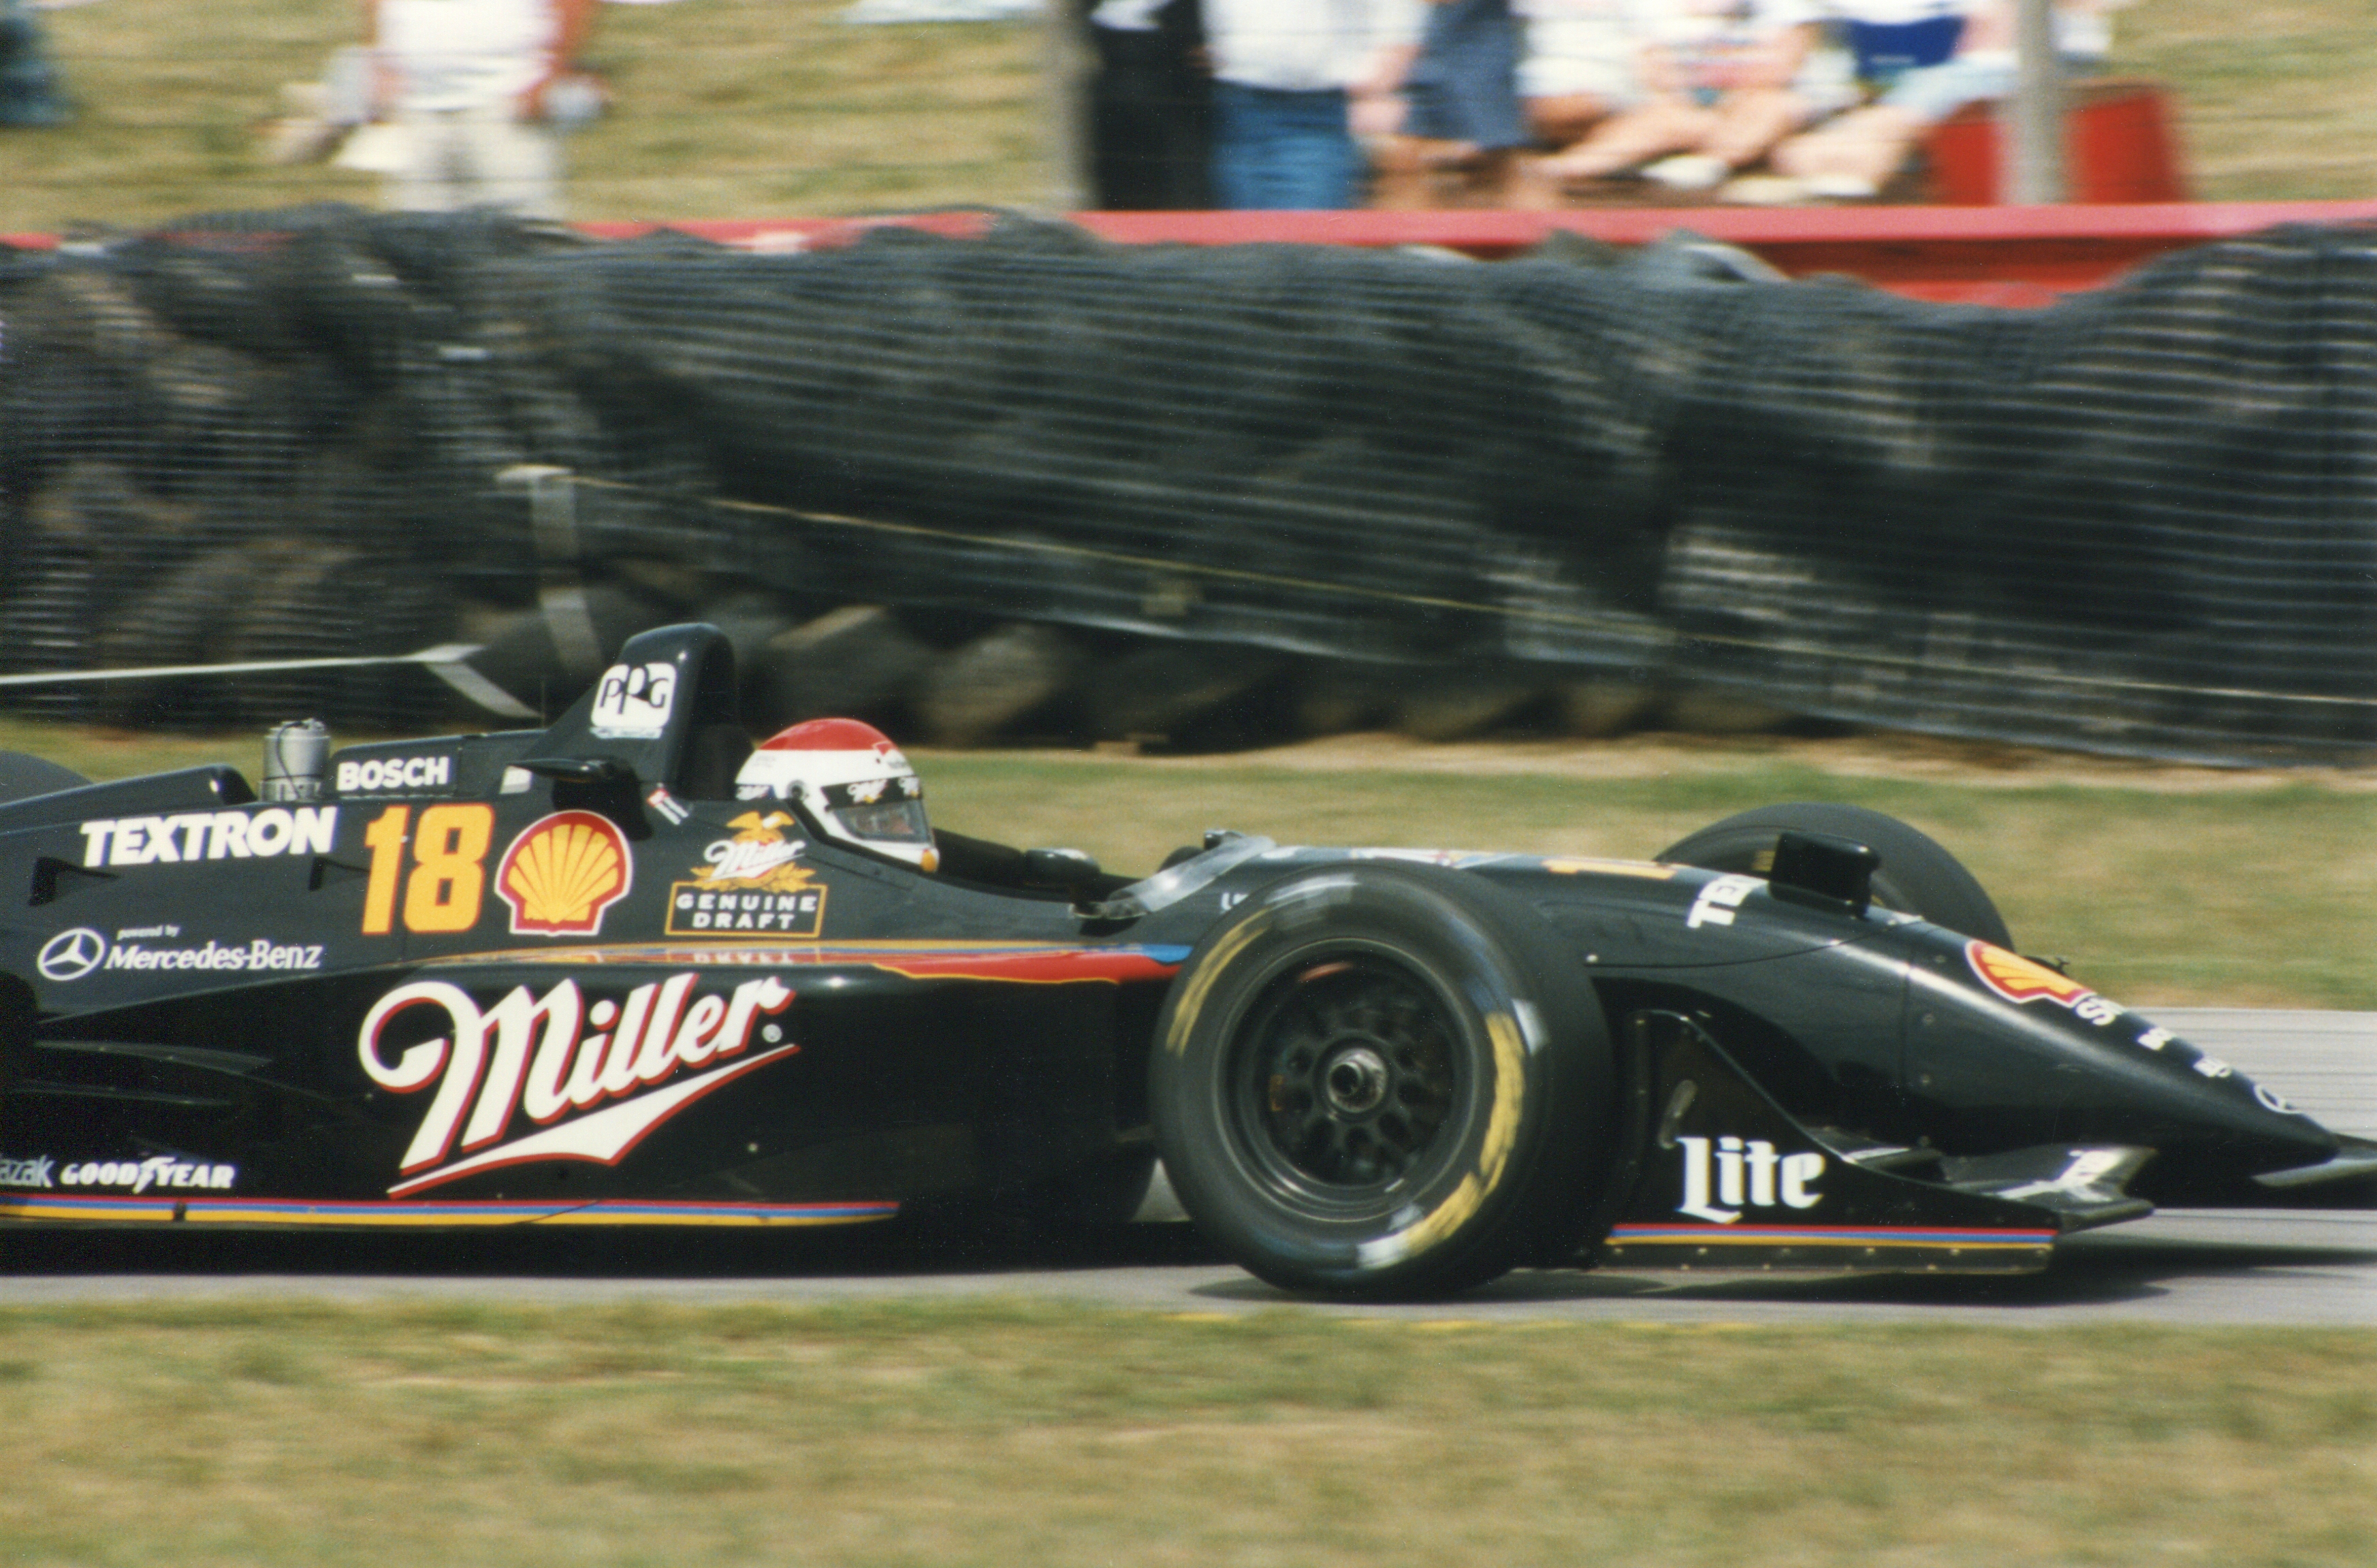 Wonderful Rahal Driving For Team Rahal At Mid Ohio Sports Car Course In 1996